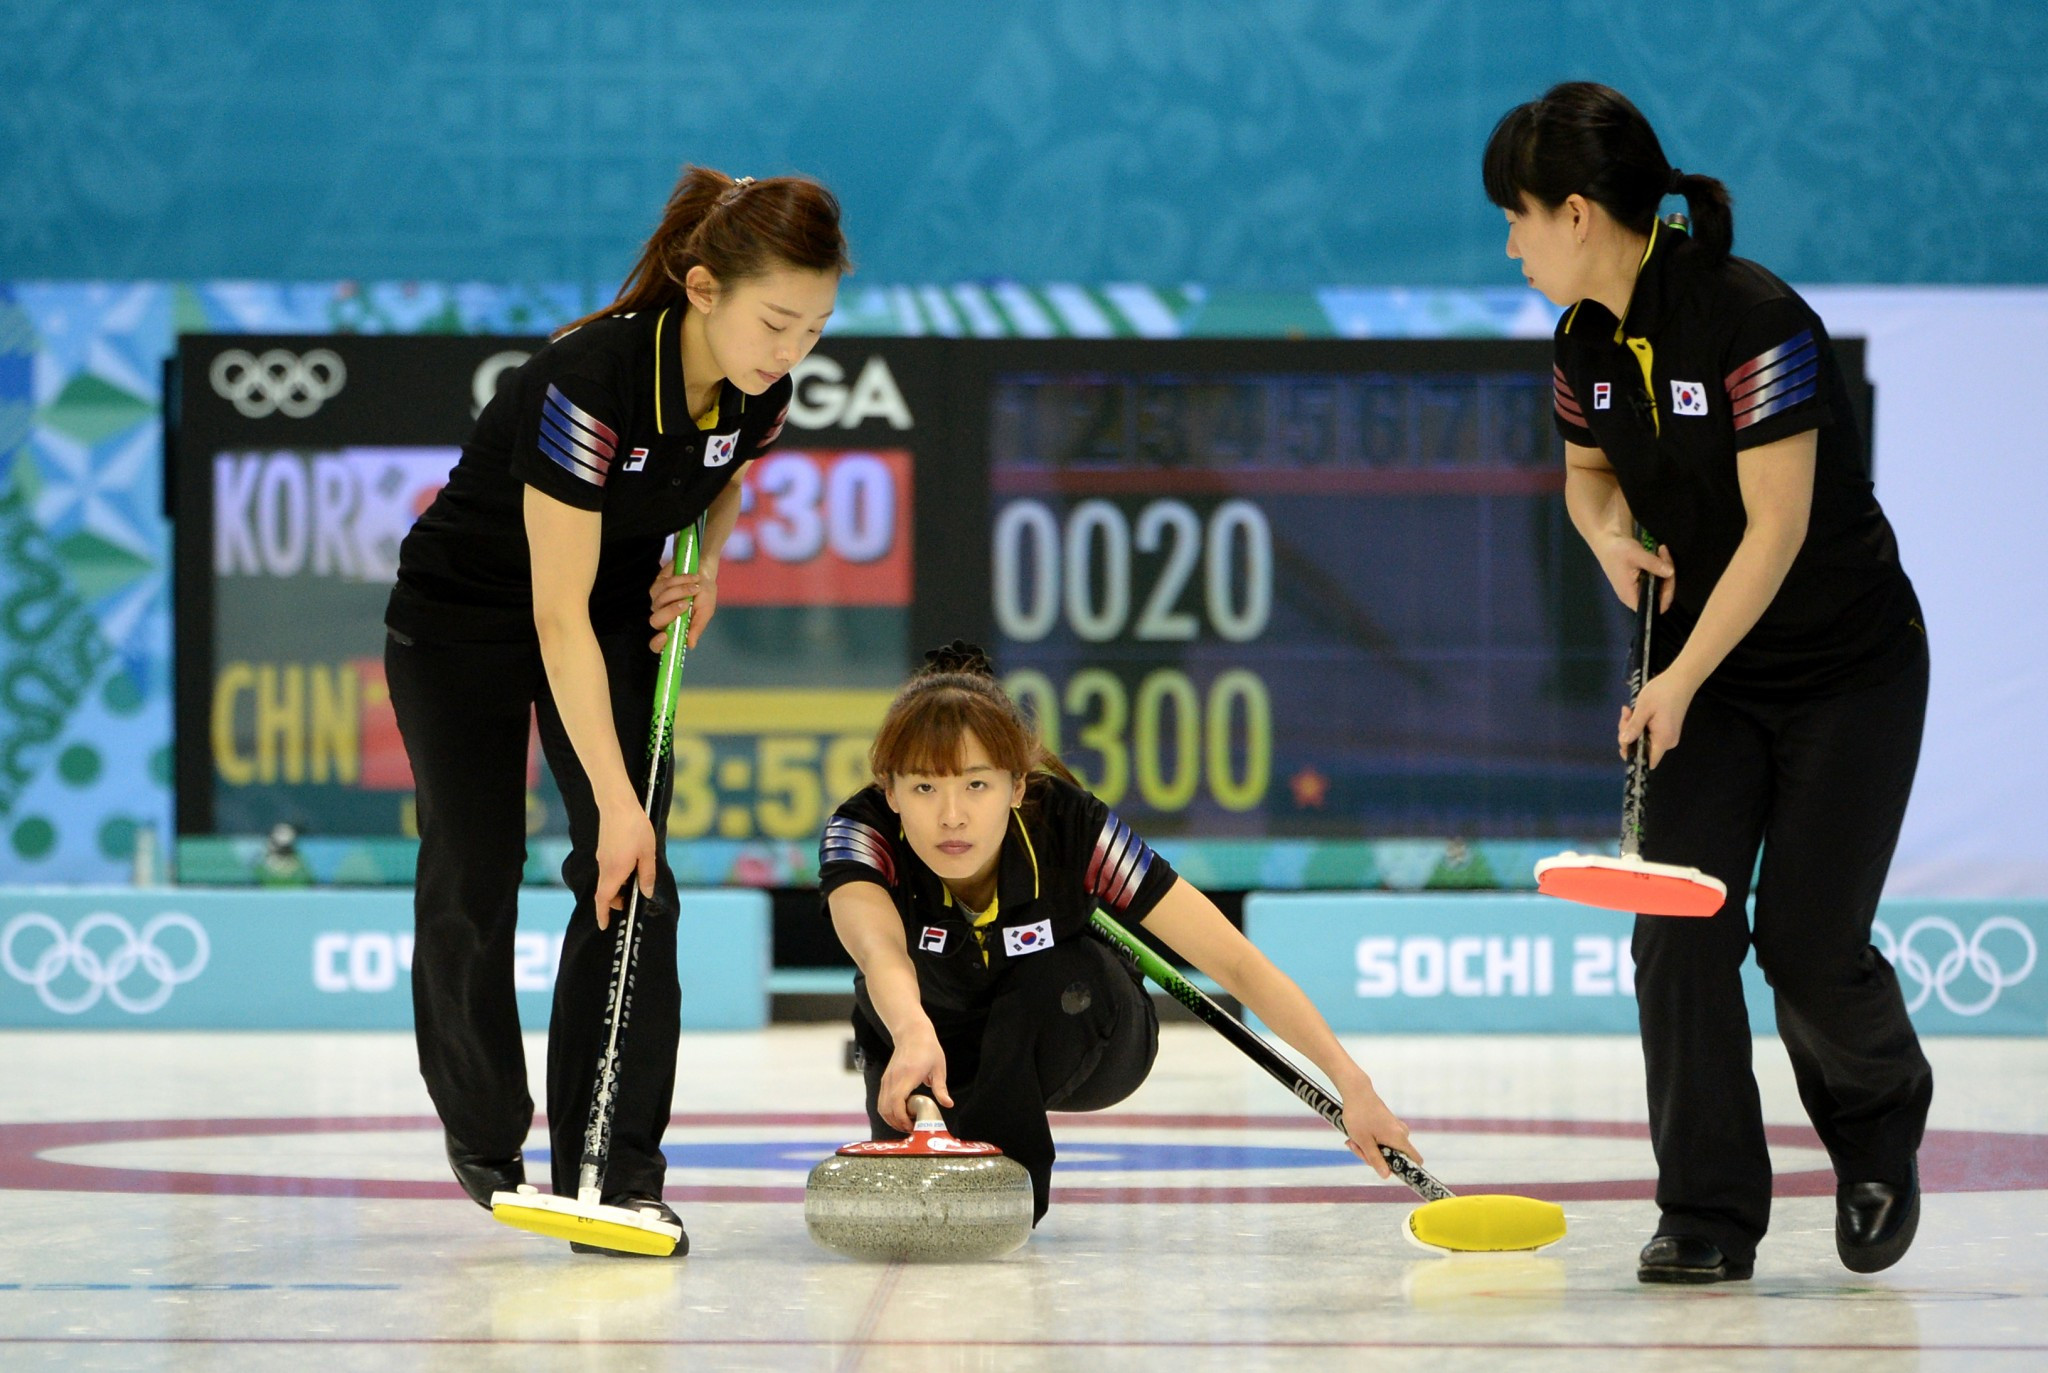 South Korea made their first appearance in curling at the Winter Olympics when the women's team featured at Sochi 2014 ©Getty Images